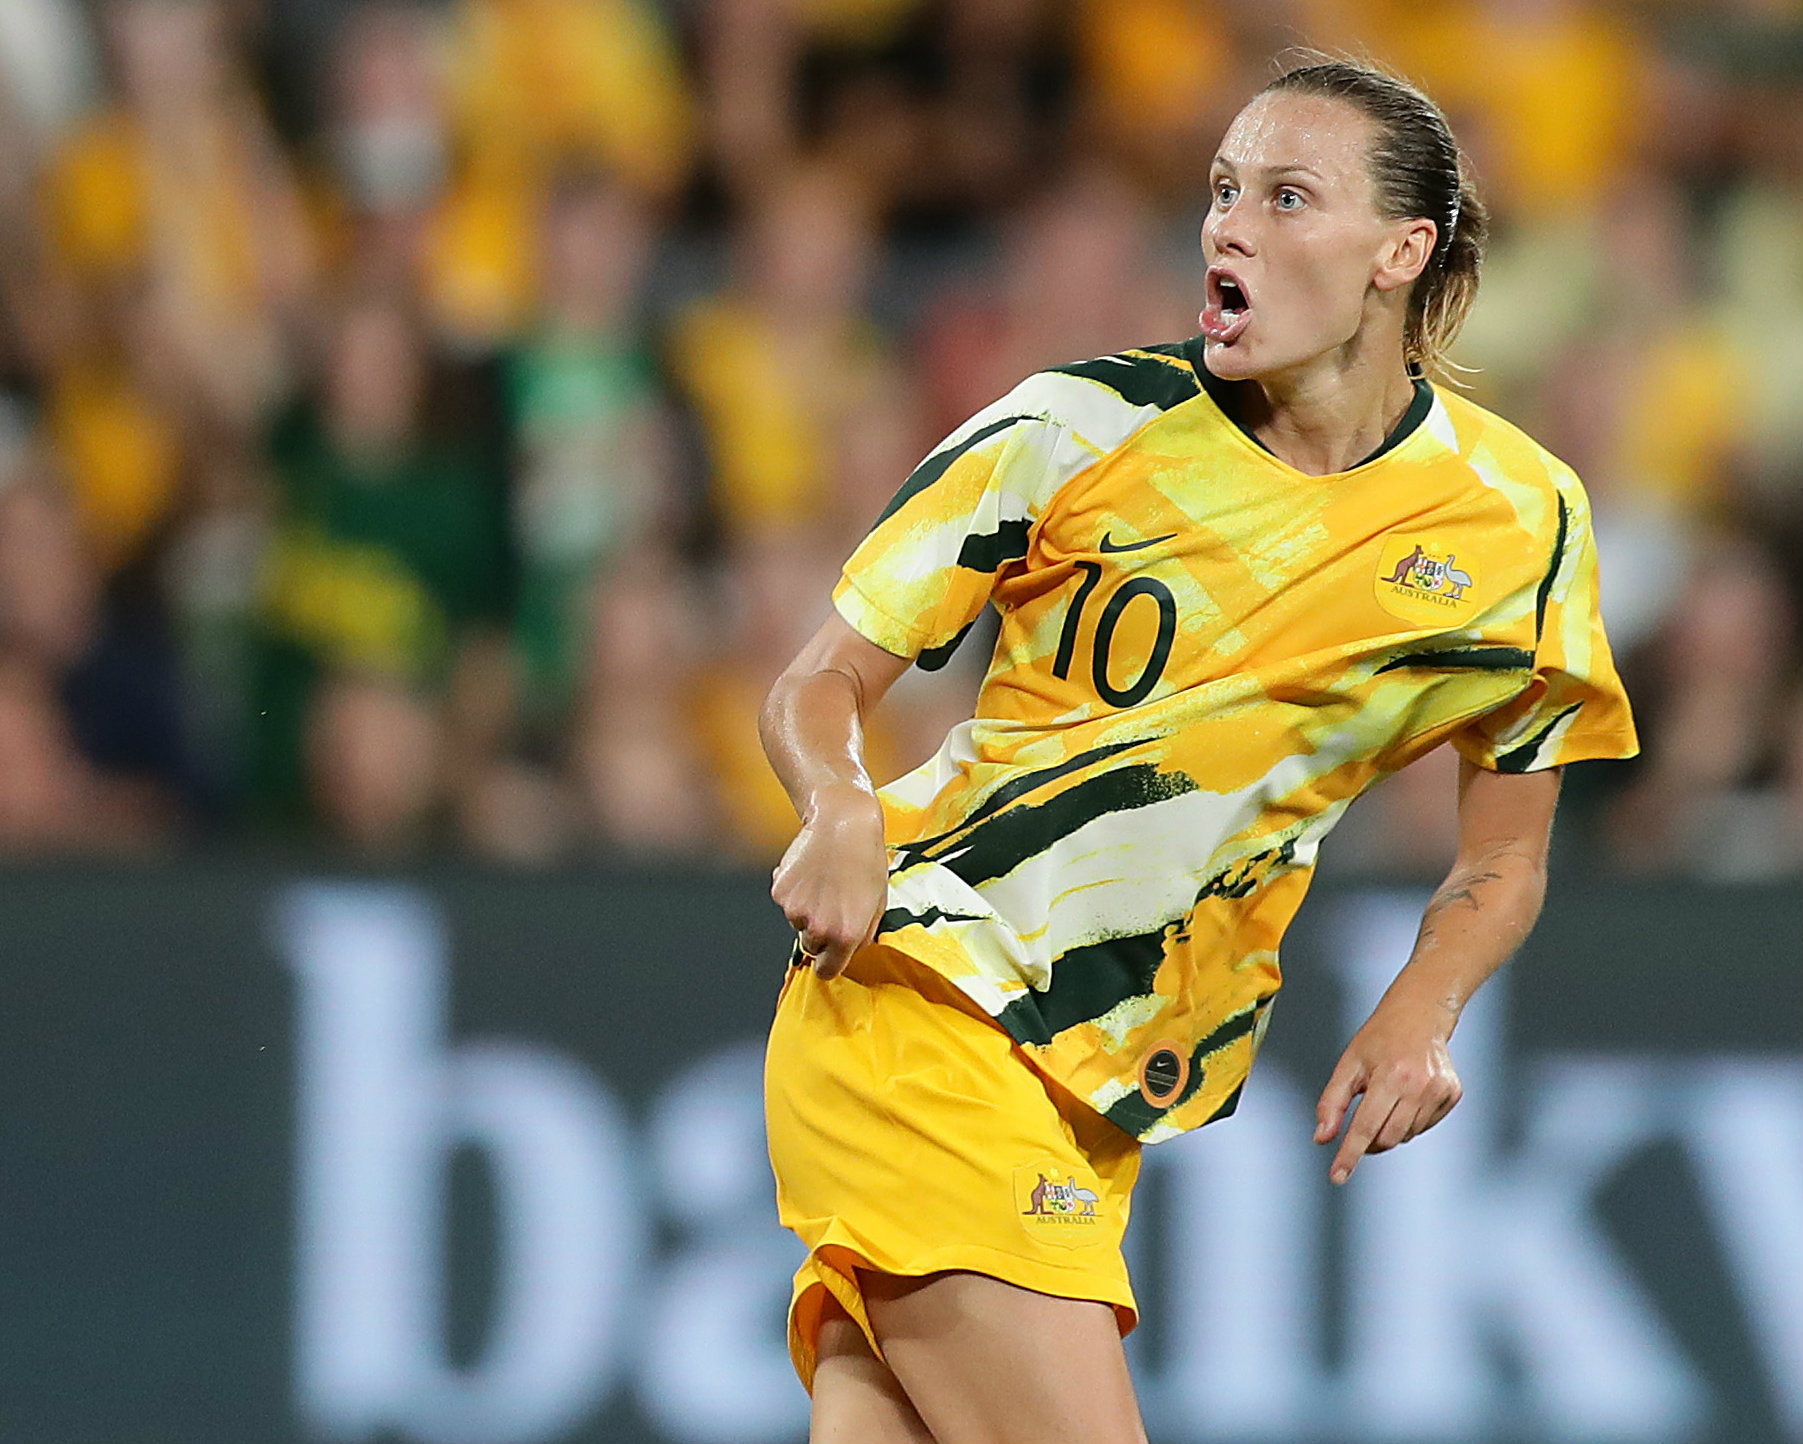 Westfield Matildas vs. China in the Bankwest